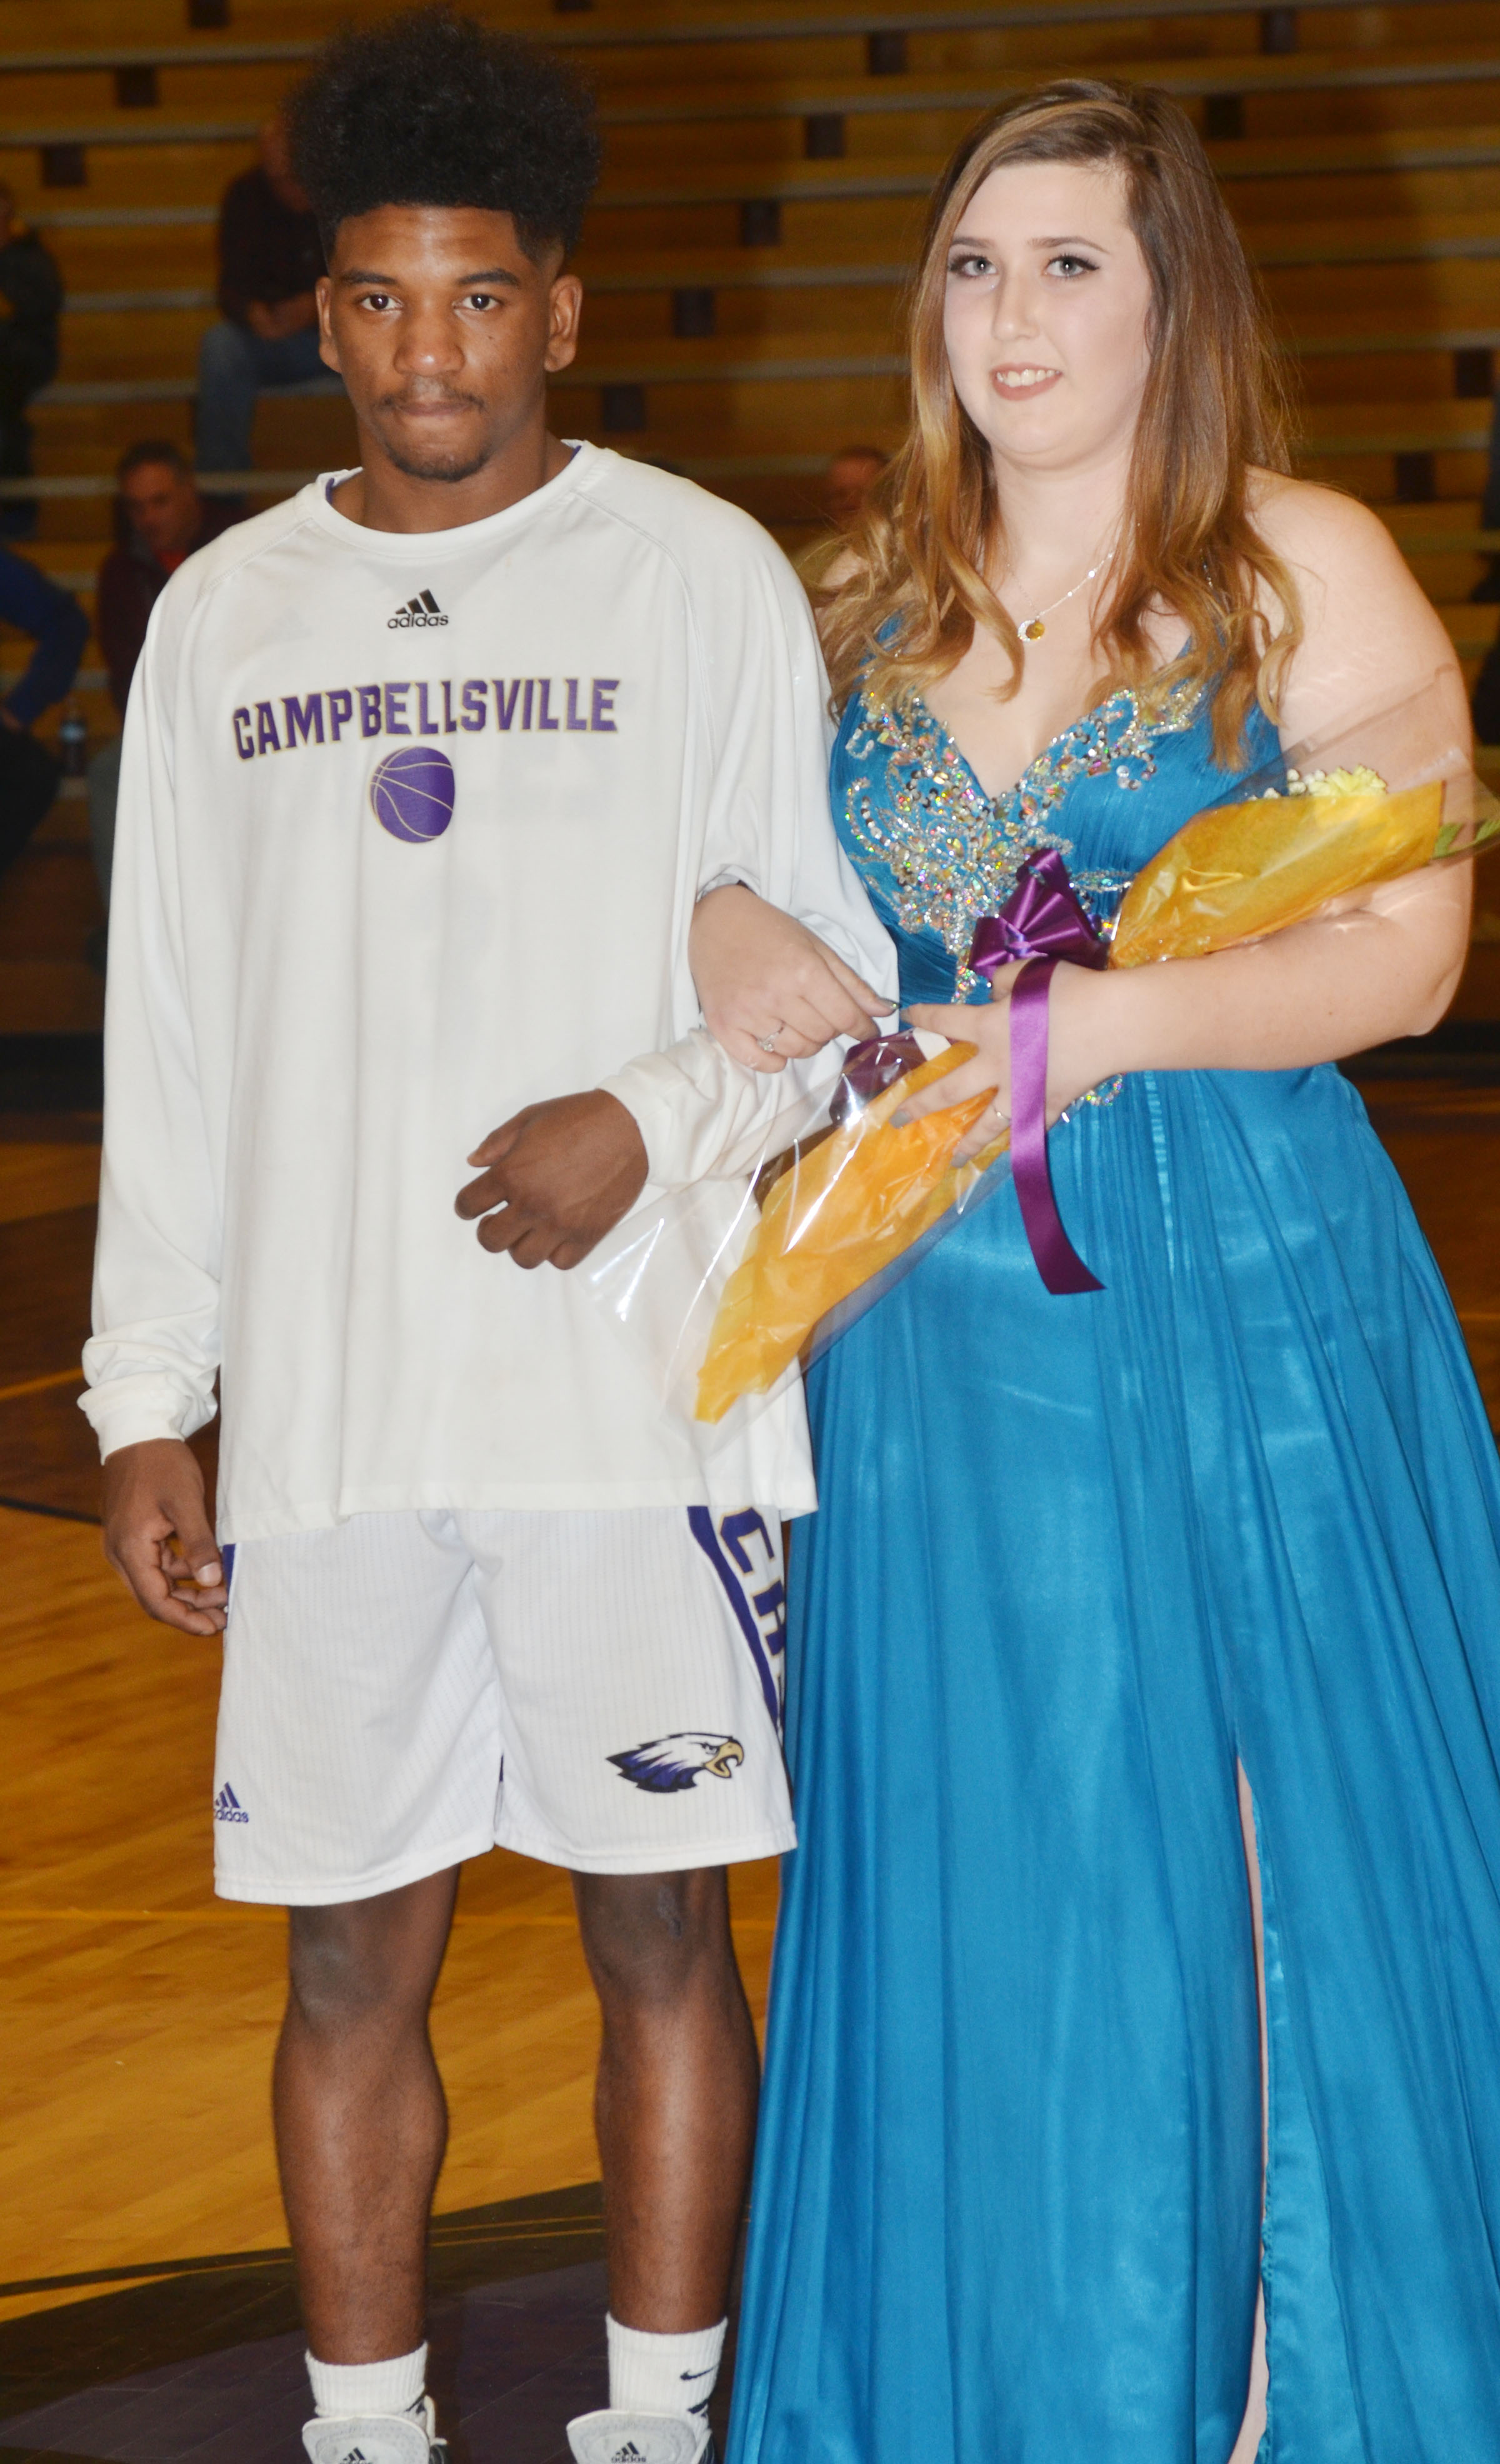 Jenny Lantz and Tyrion Taylor represented the CHS junior class.